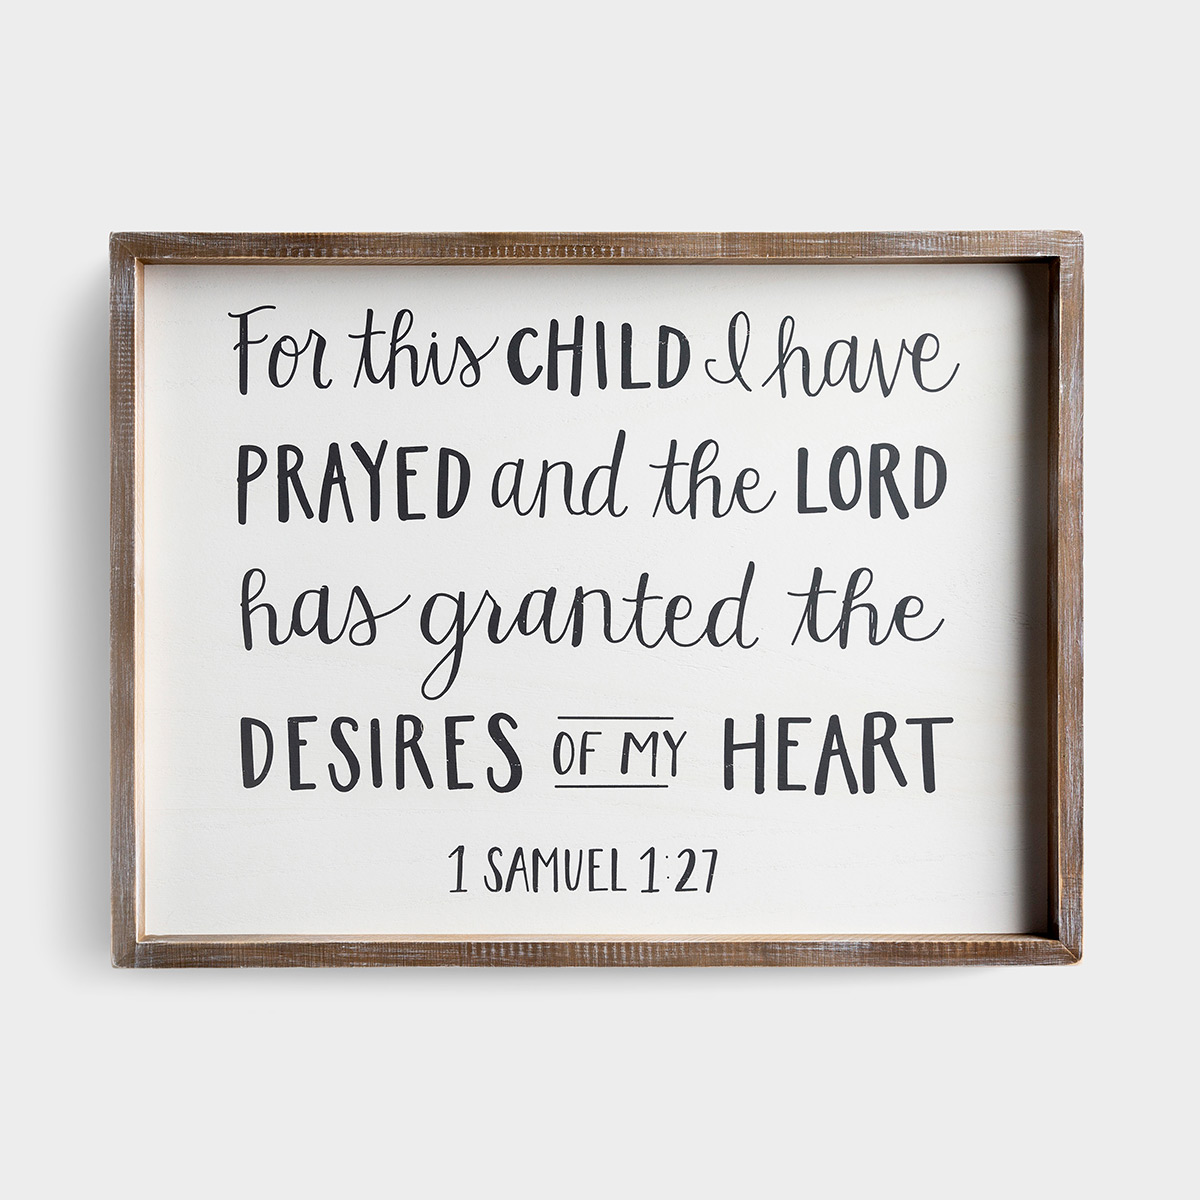 For This Child I Have Prayed - Large Framed Wall Board